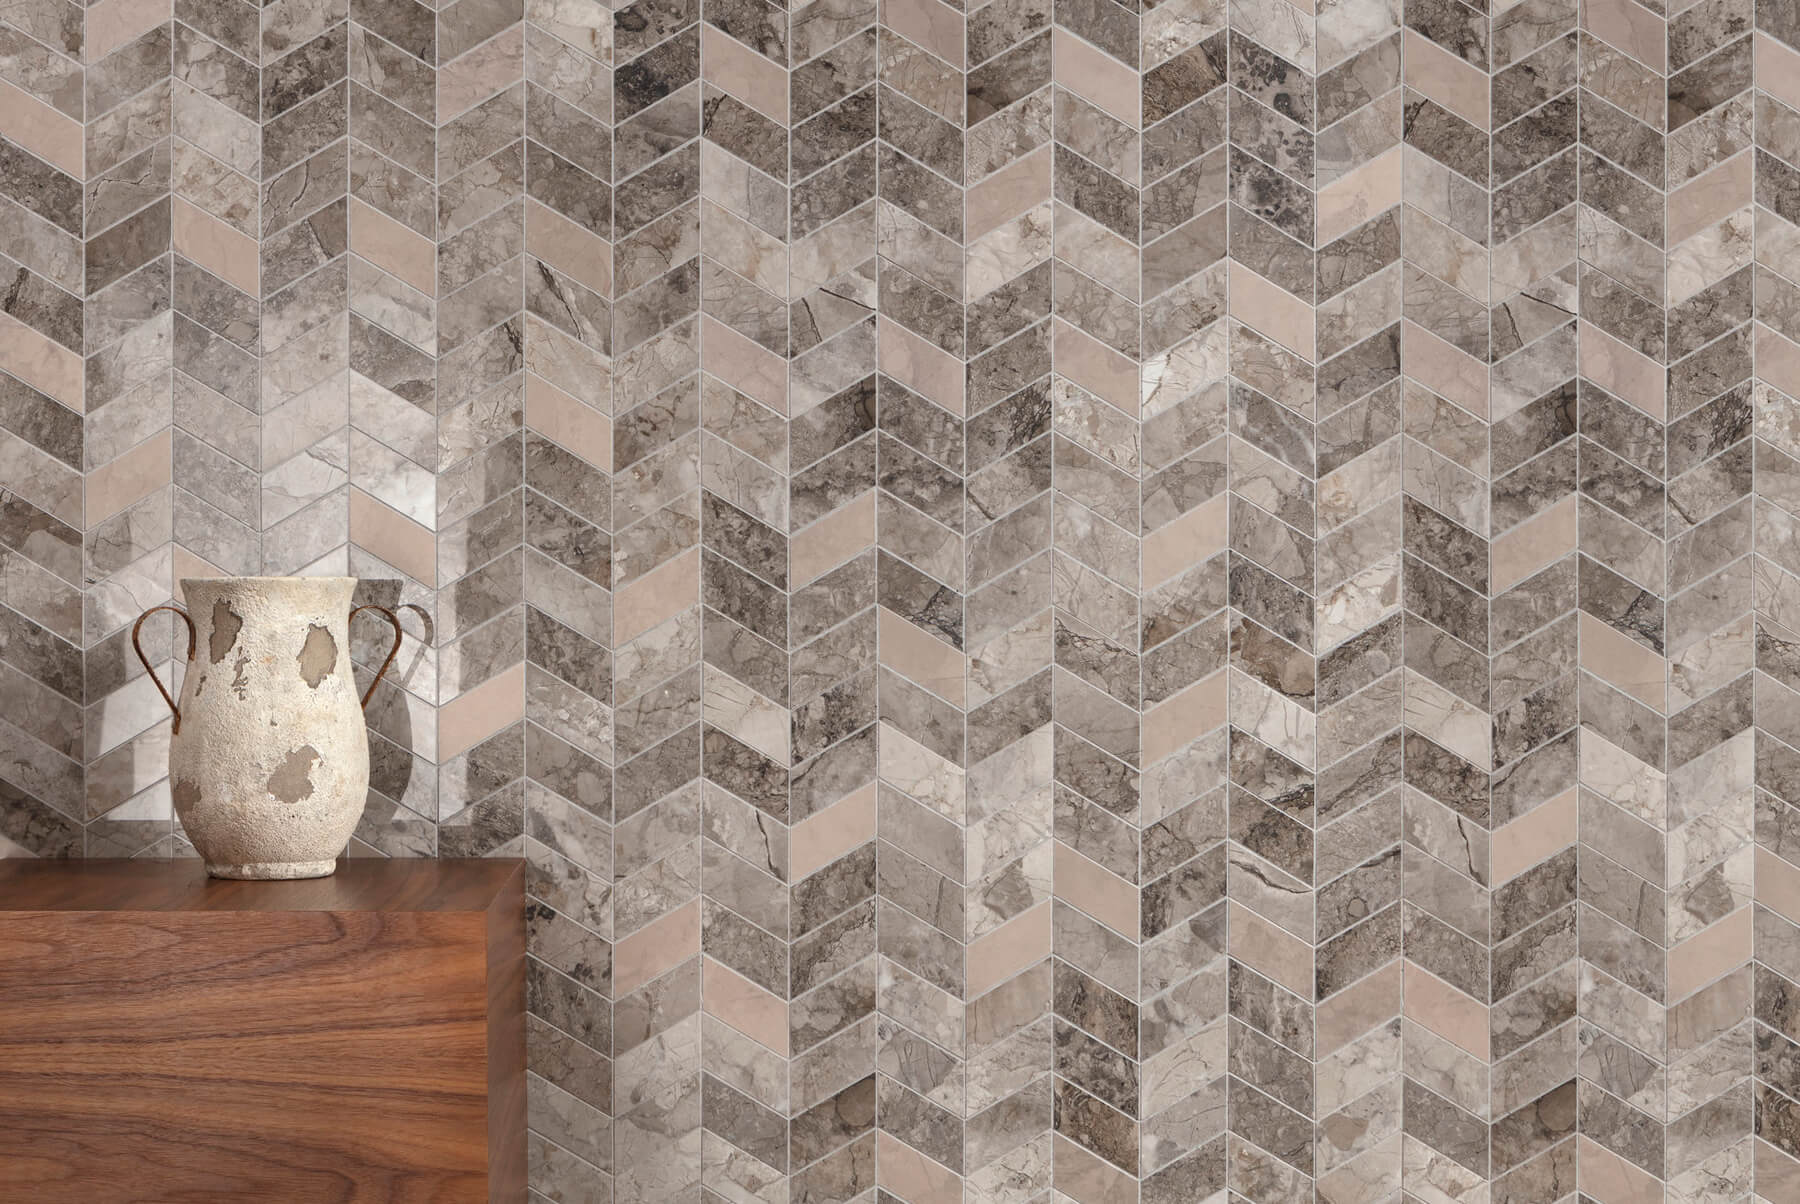 TILES-DREAMY-MARBLE-INSET-2-1800x1204